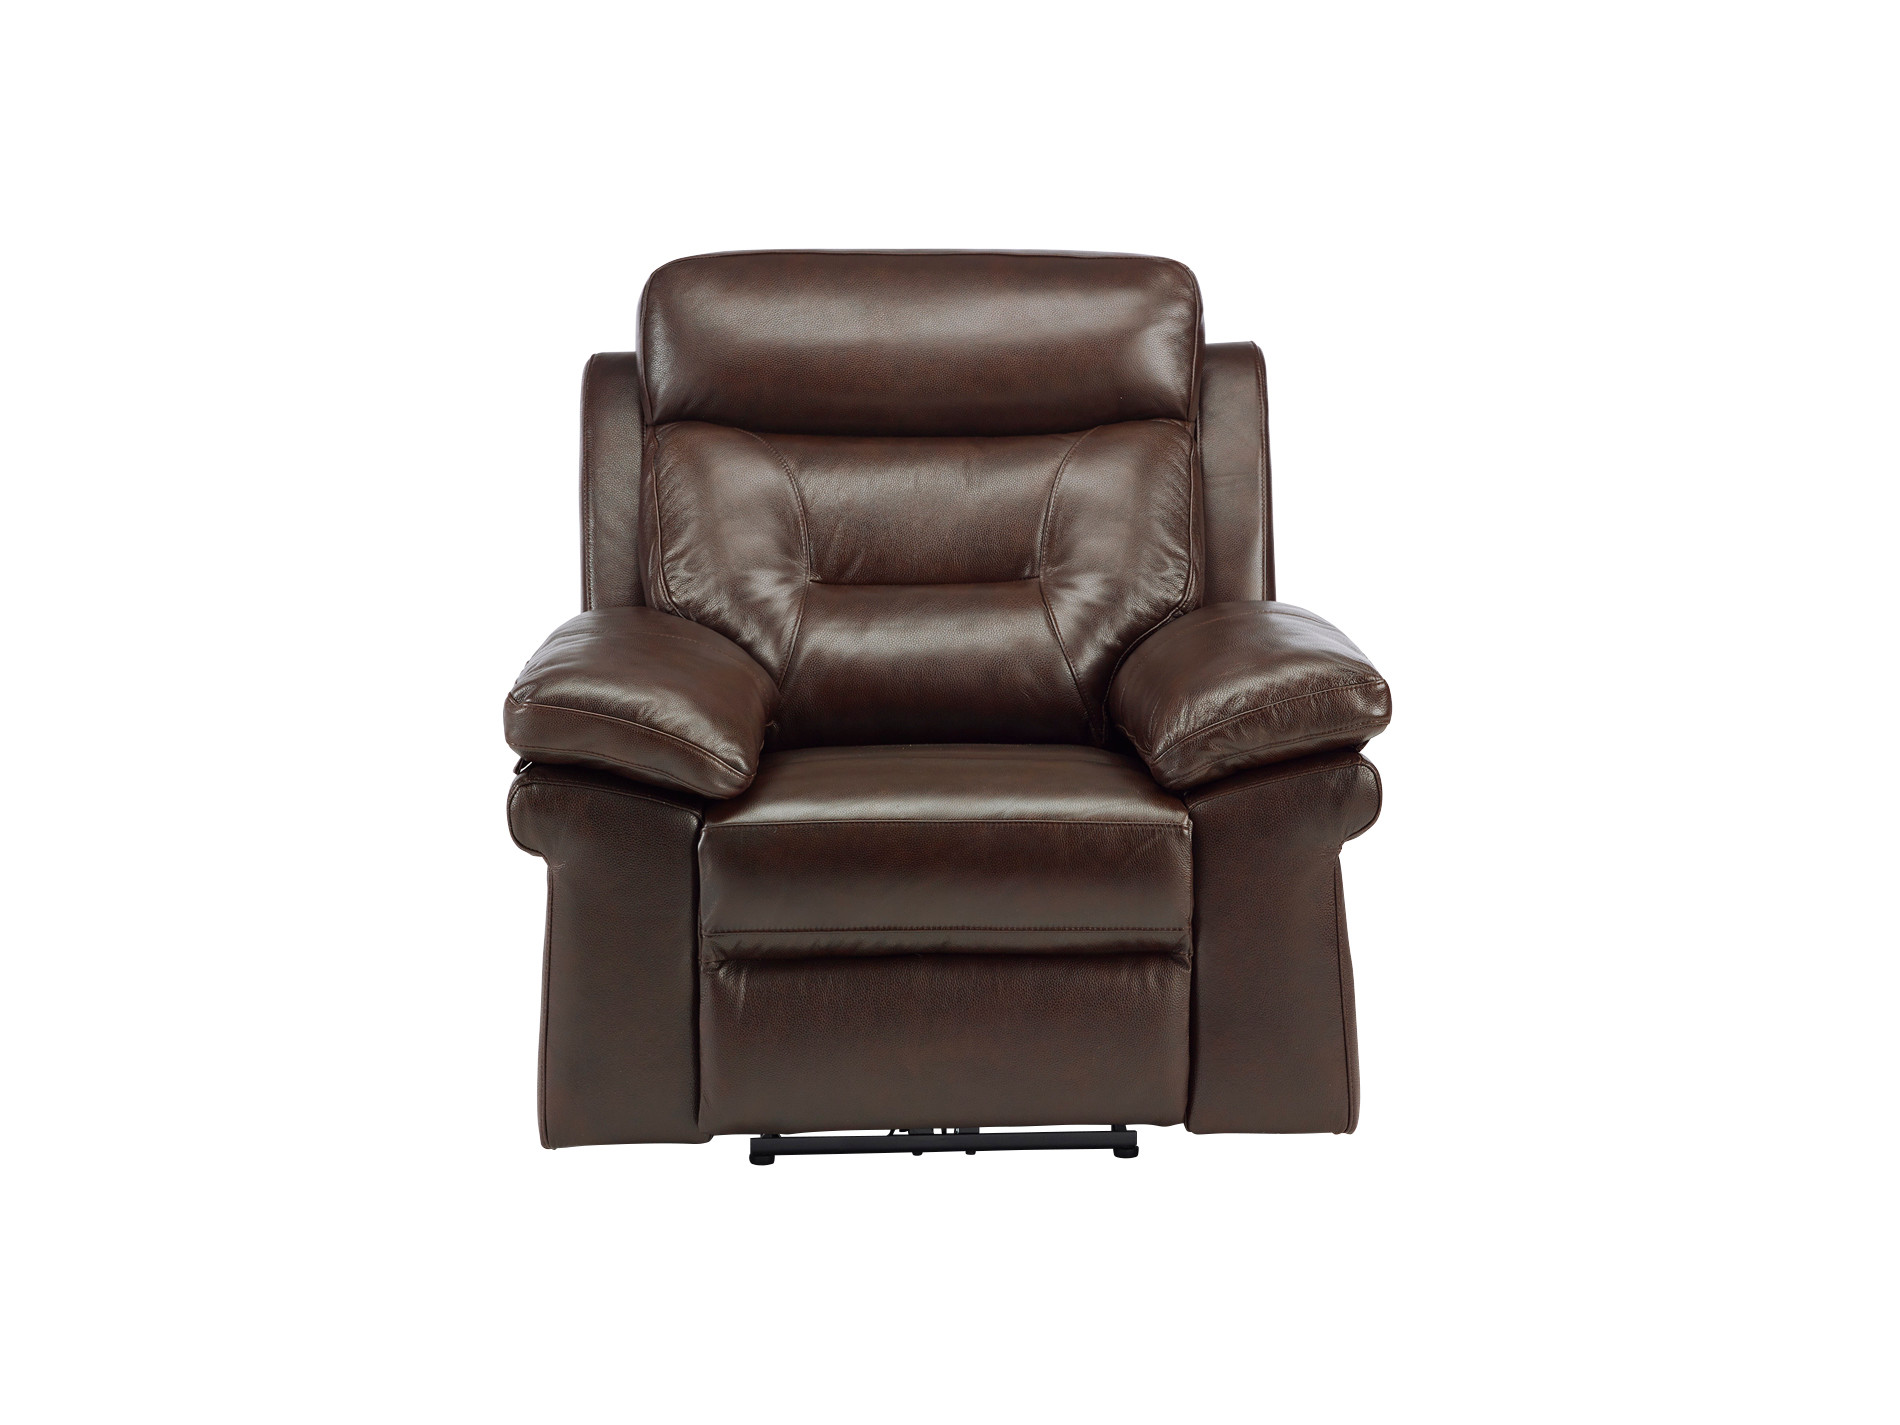 light brown leather recliner leather italia classic light brown push back recliner. Black Bedroom Furniture Sets. Home Design Ideas